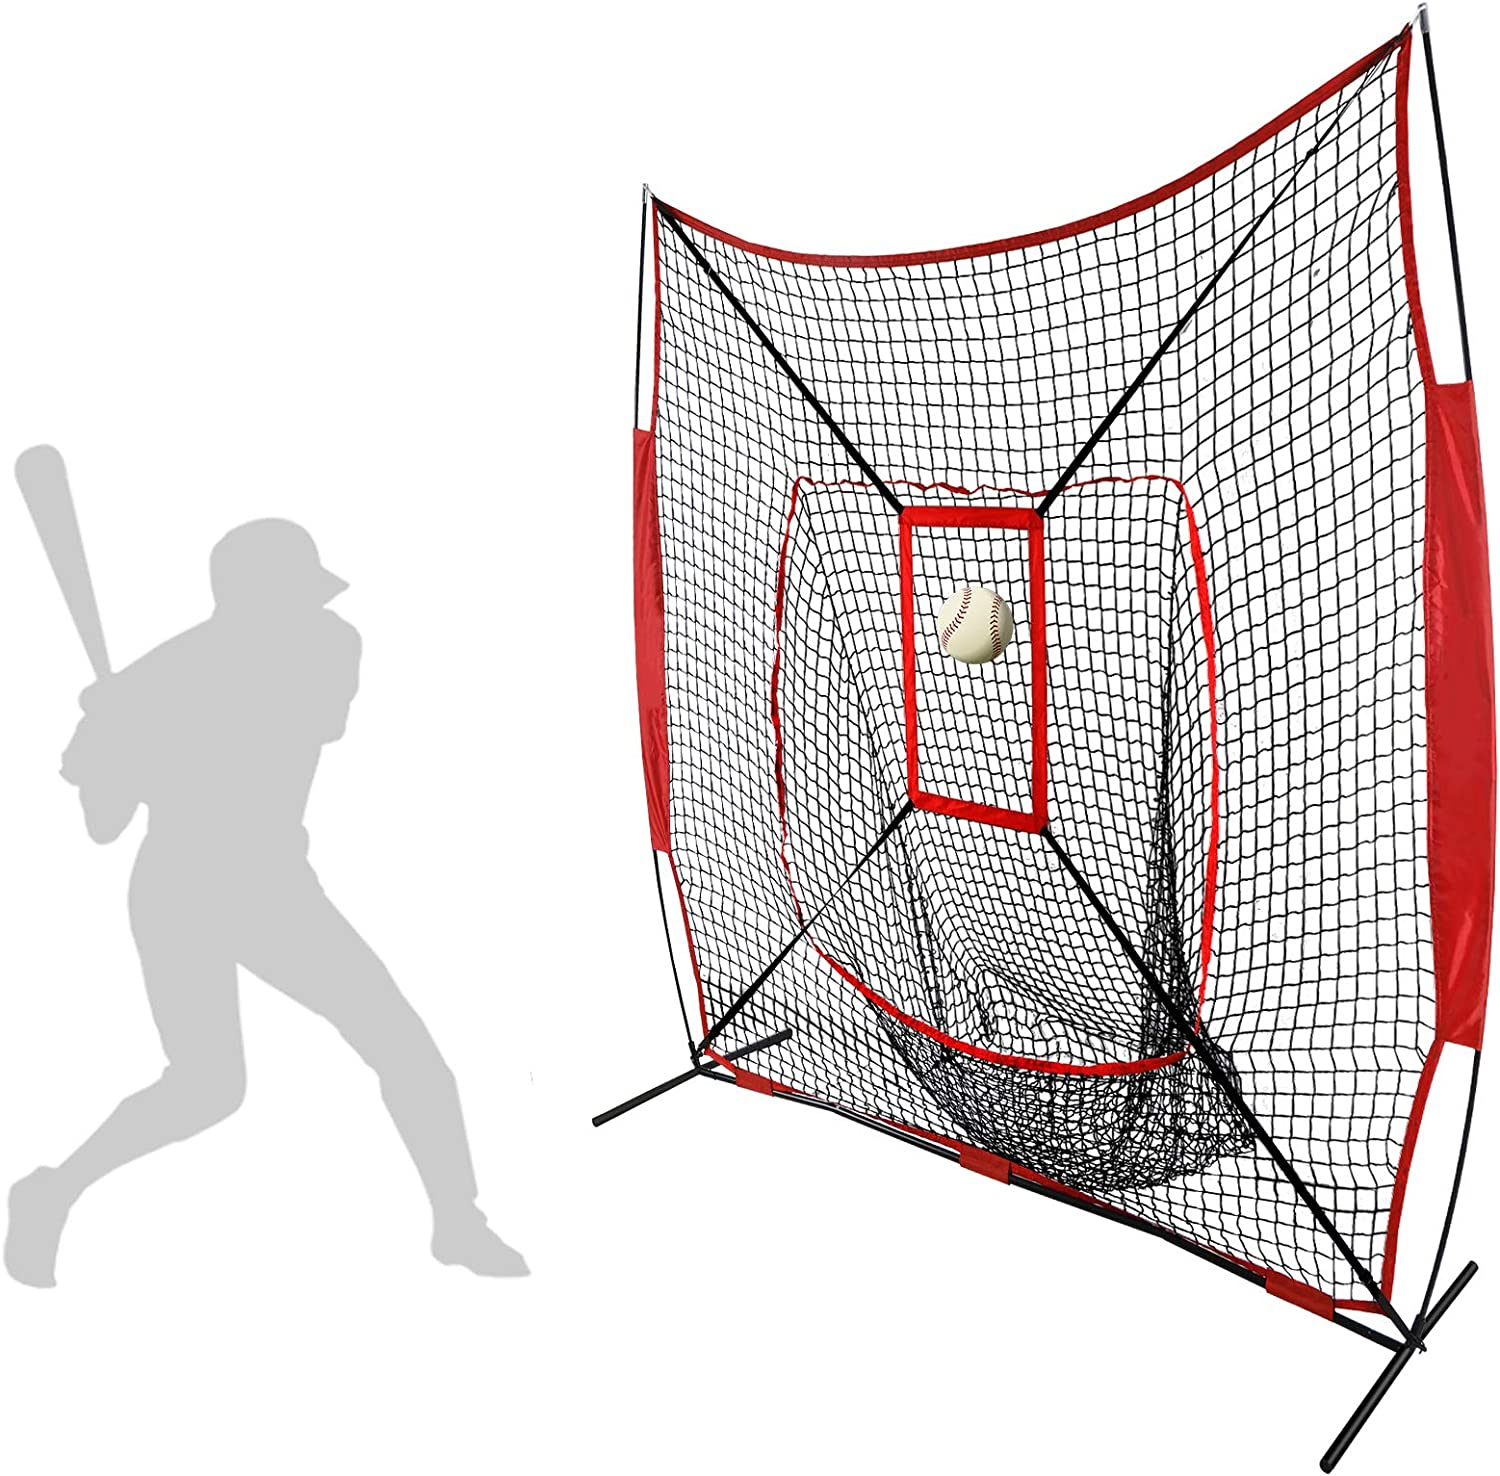 Smartxchoices 7×7 Heavy Duty Baseball Softball Practice Net with Mouth, Bow Frame and Bonus Strike Zone for Pitching Hitting and Catching, Portable Batting Soft Toss Backstop Training Equipment Aids